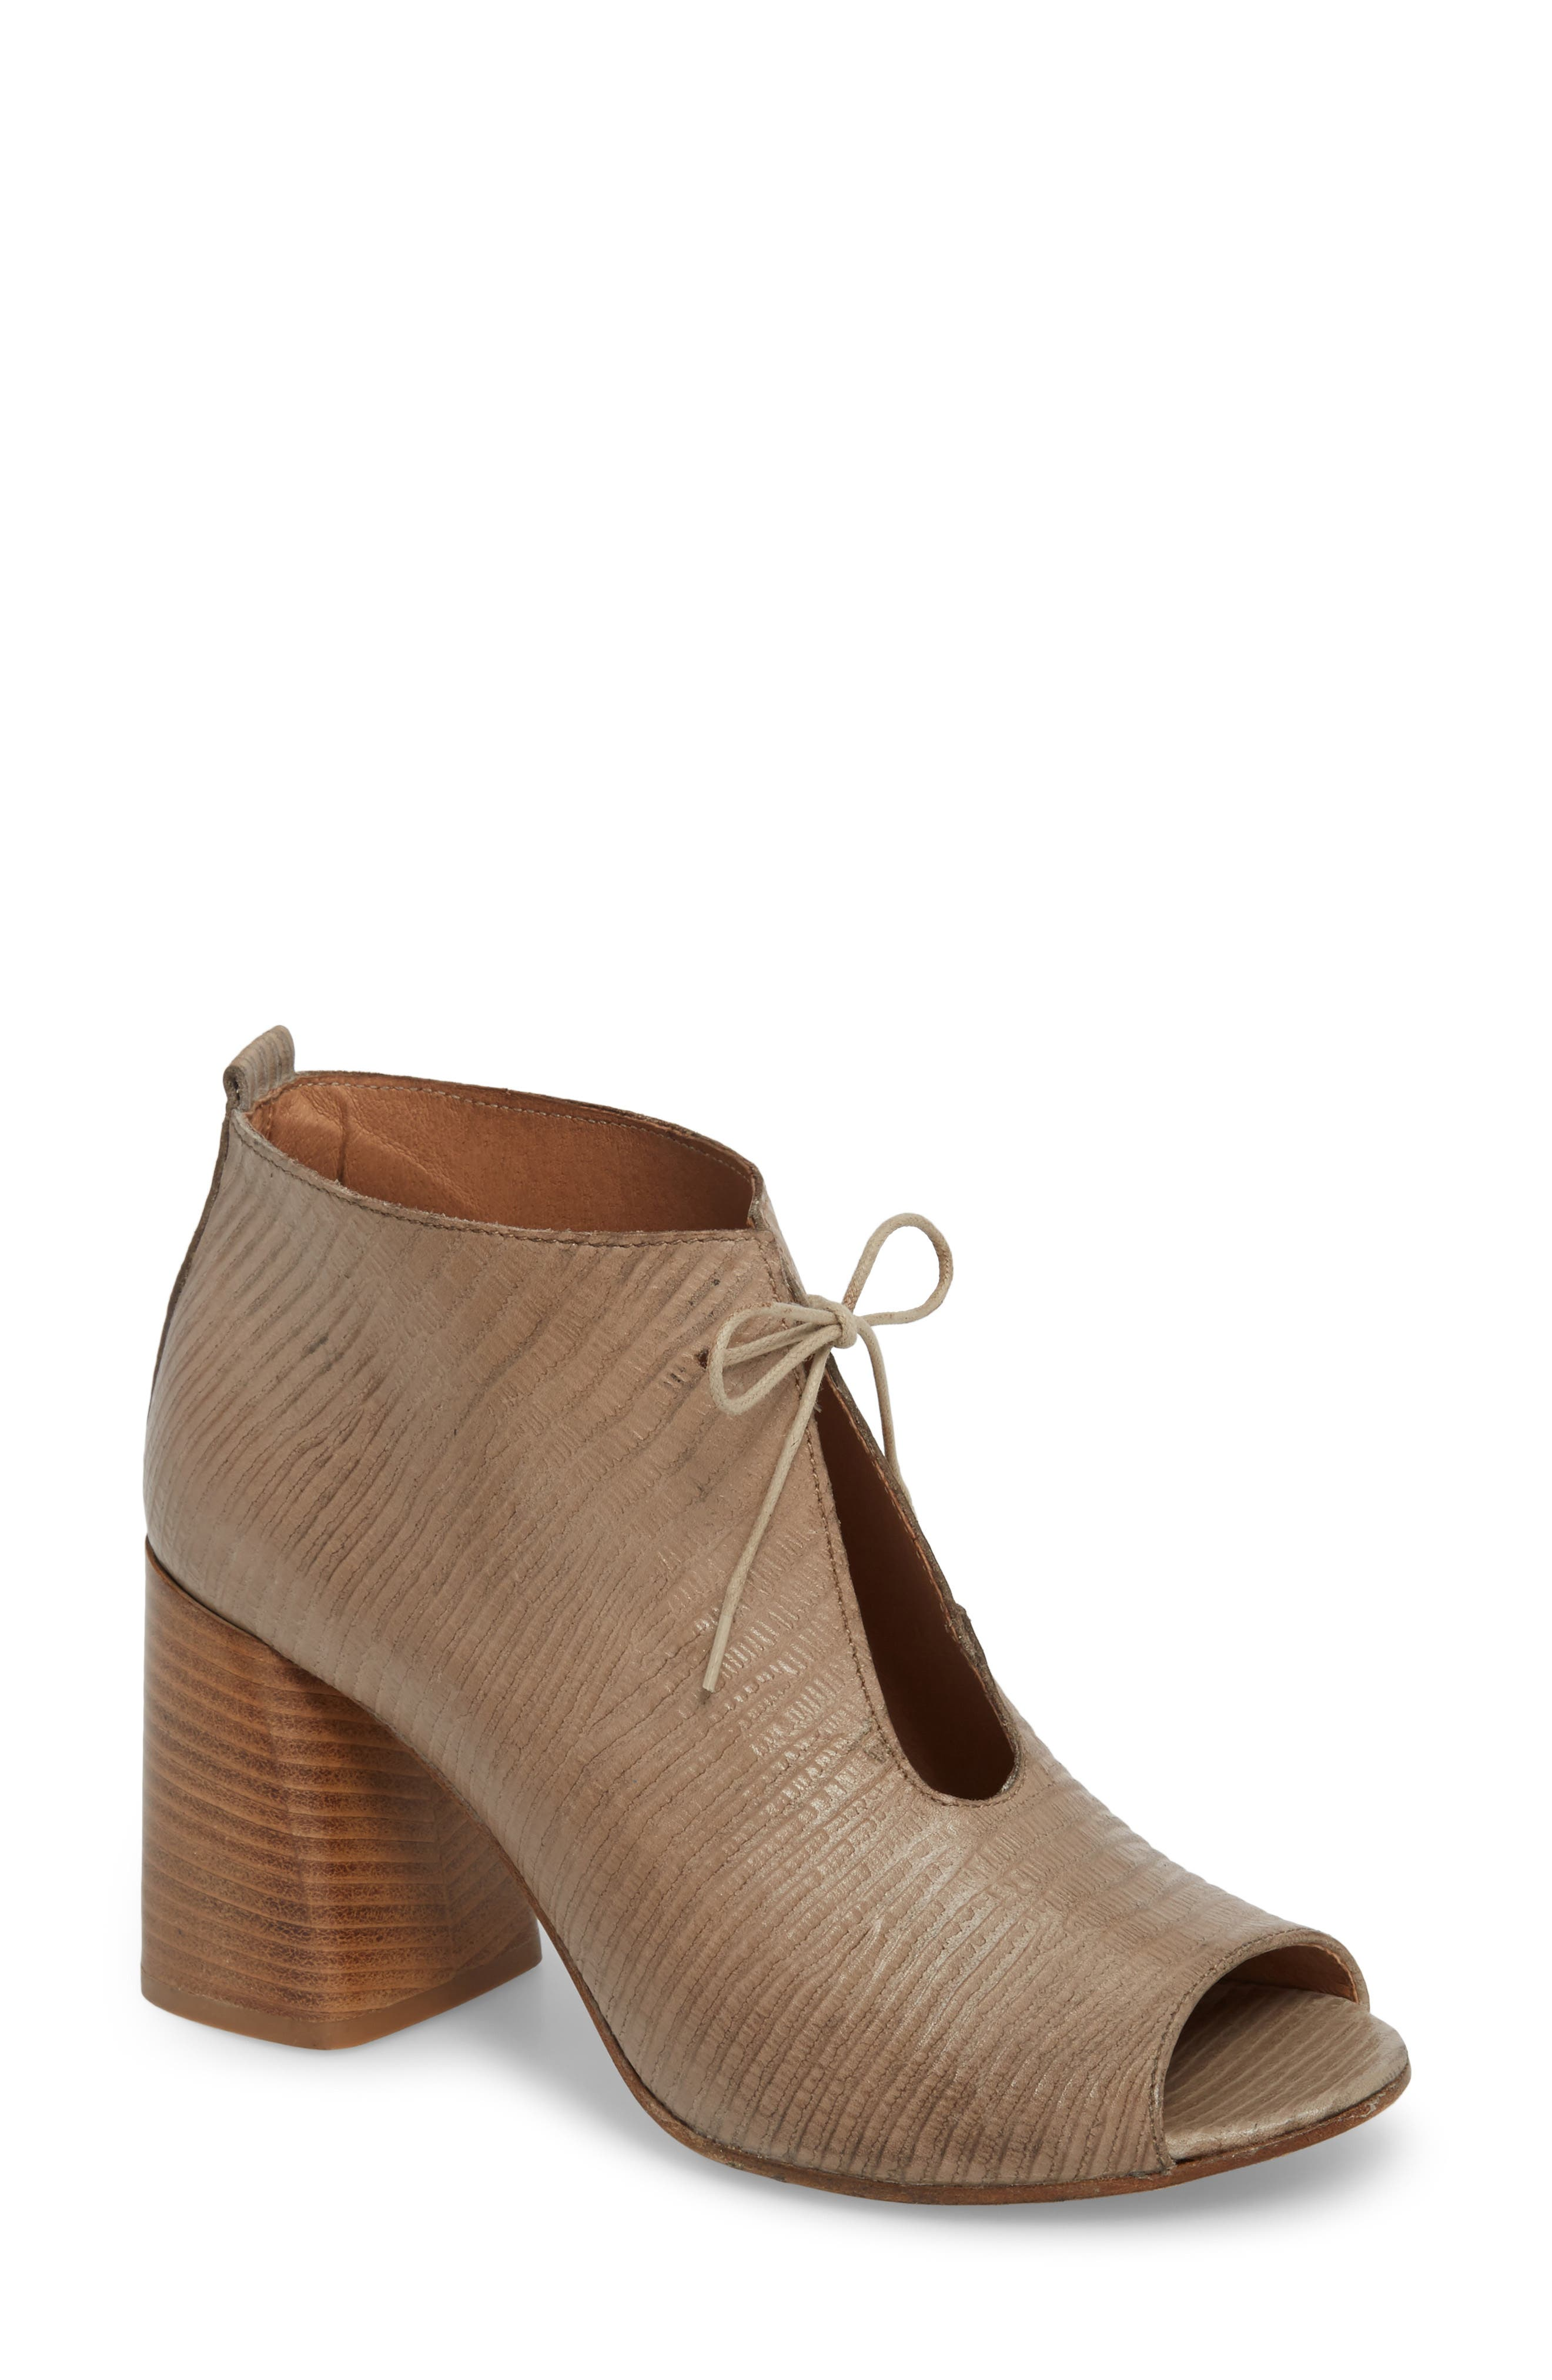 Lacey1 Bootie,                         Main,                         color, Taupe Leather